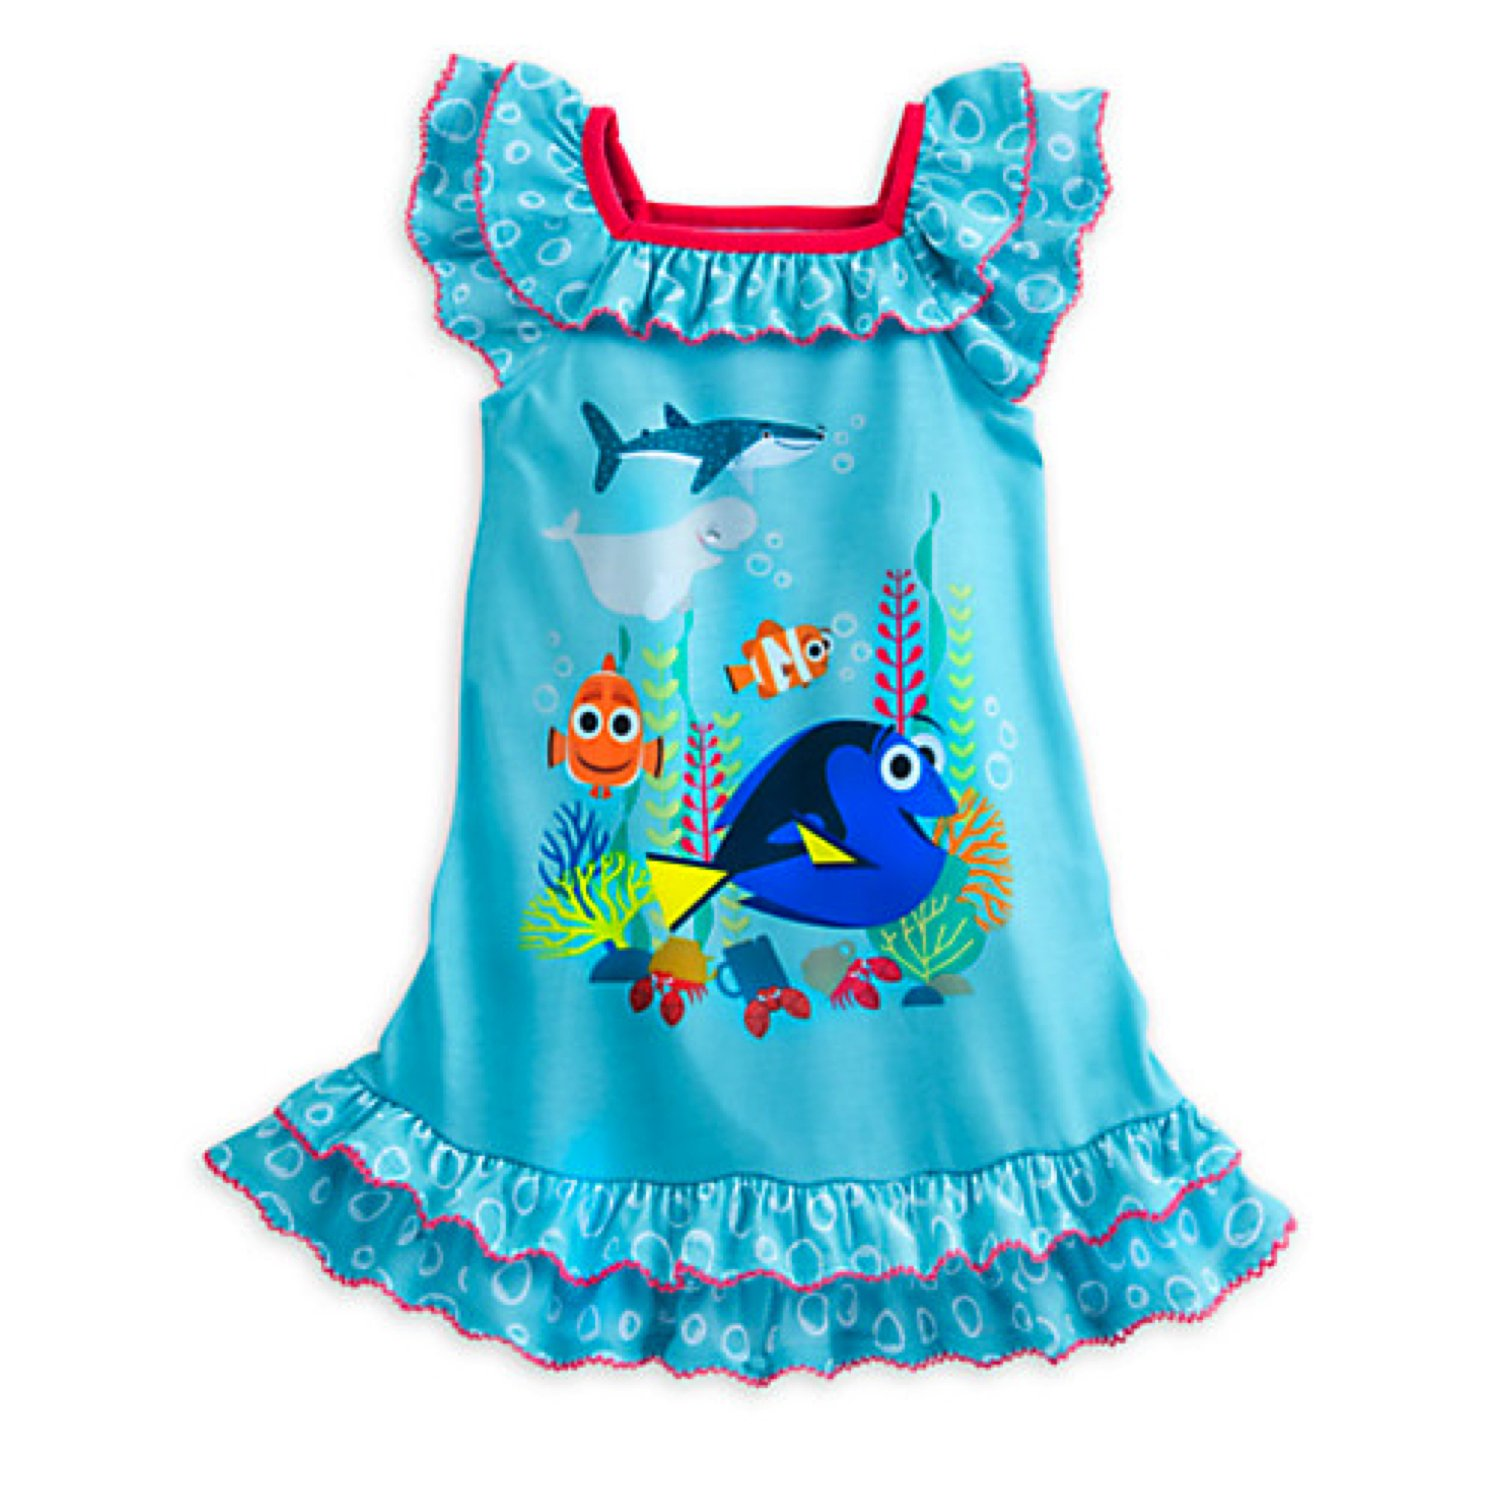 Disney Nightgown - Finding Dory (7/8) 00-MHAZLG